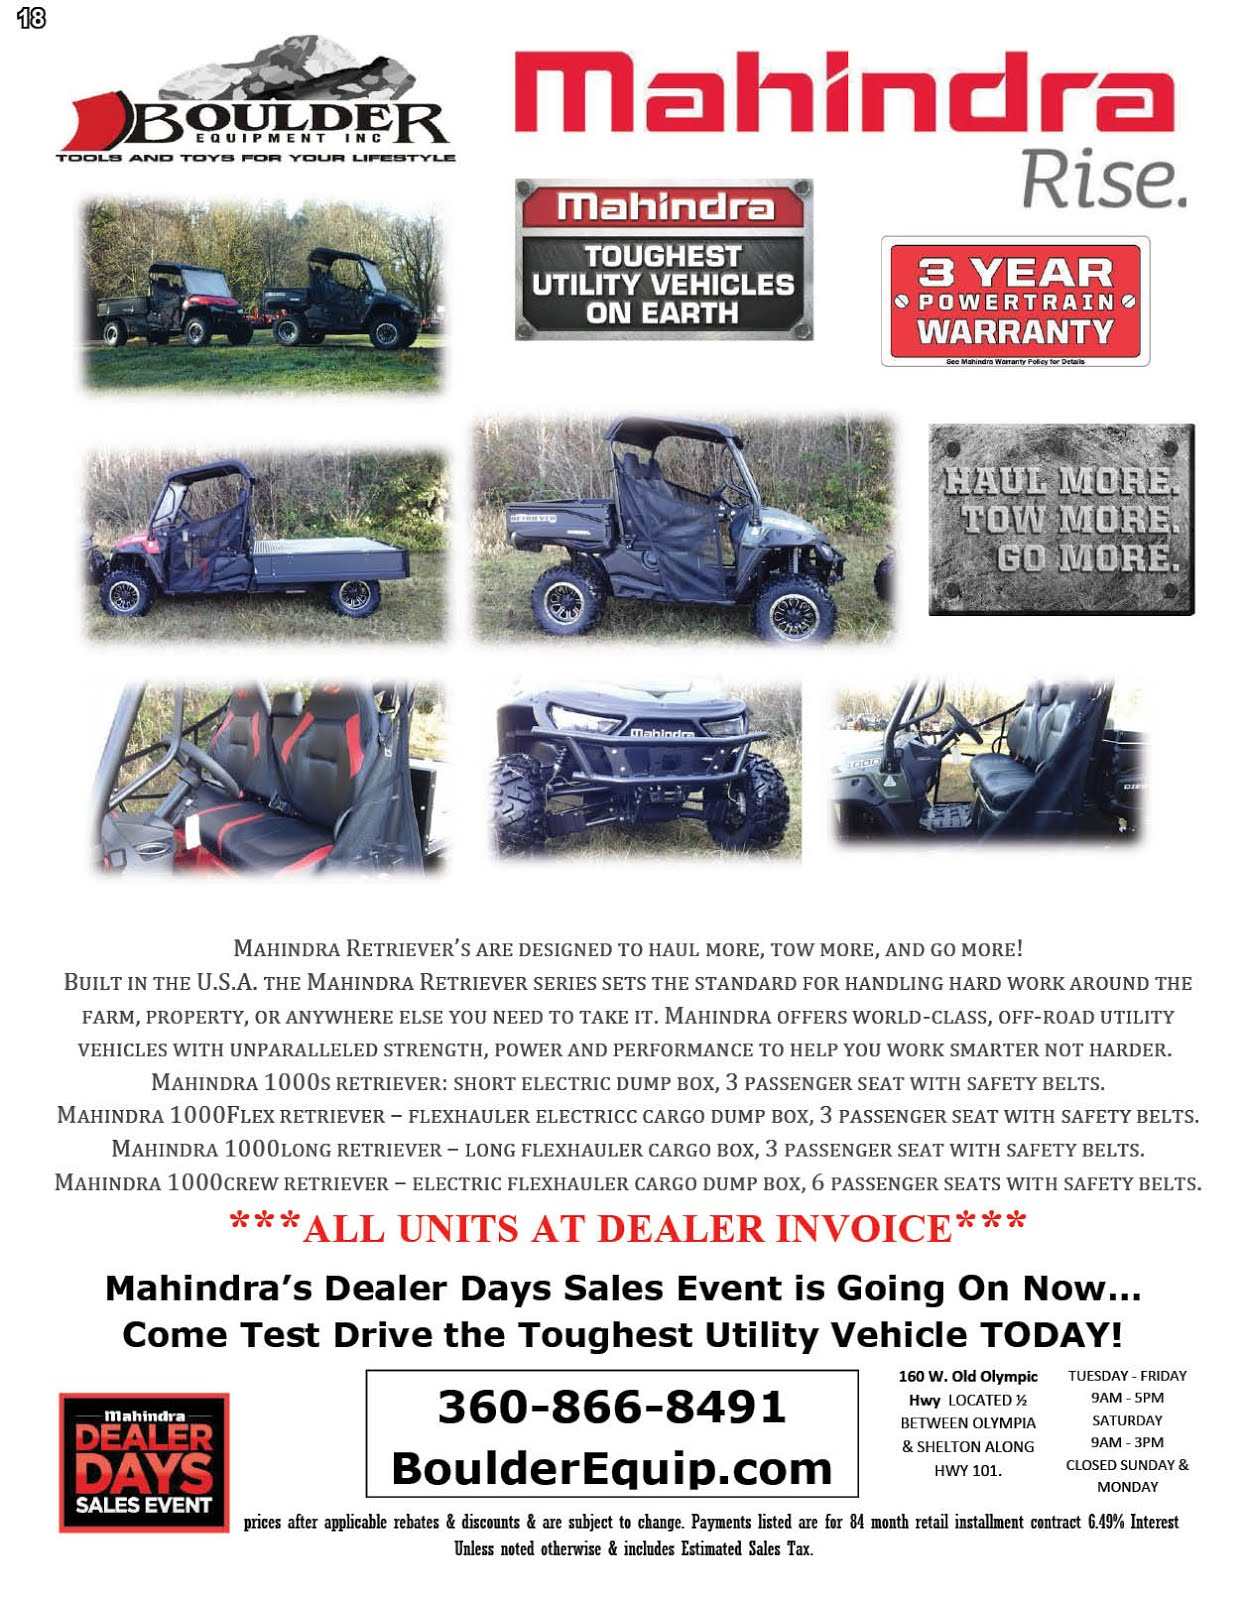 Boulder Equipment Mahindra Tractor Sale!!